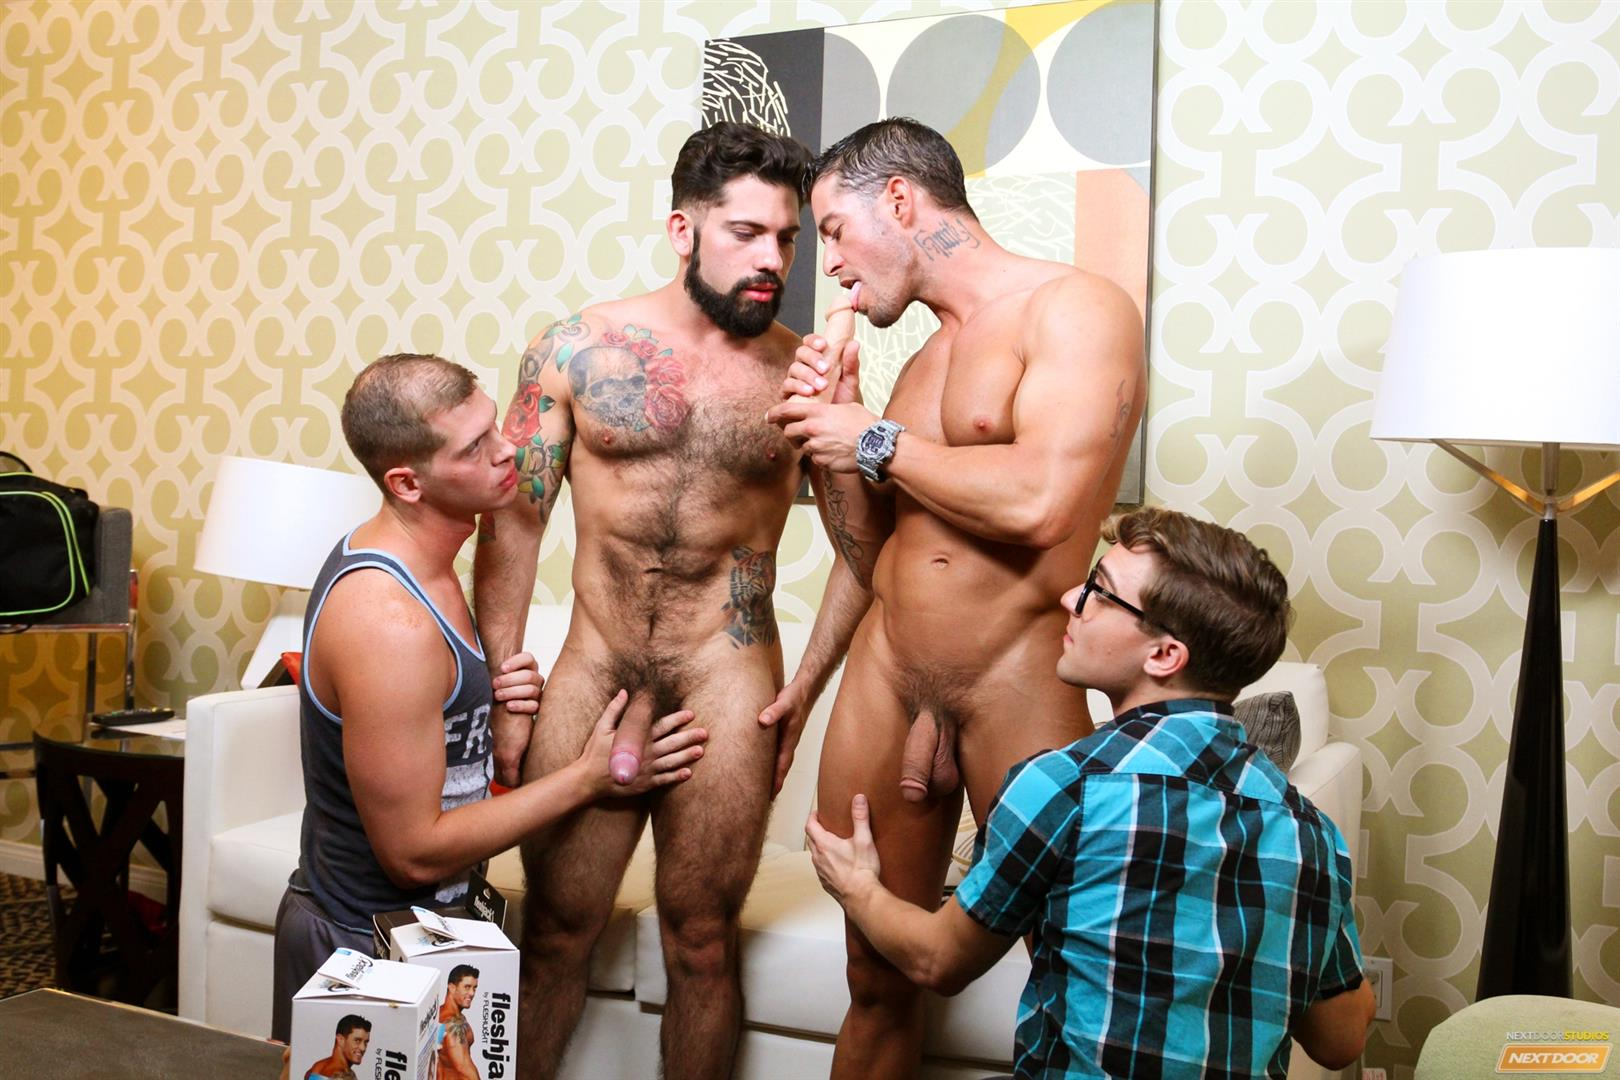 Cody Cummings and Tyler Morgan and Alessandro Del Torro Cock Sucking Lessons Amateur Gay Porn 10 Cody Cummings Gives The Boys Cock Sucking Lessons